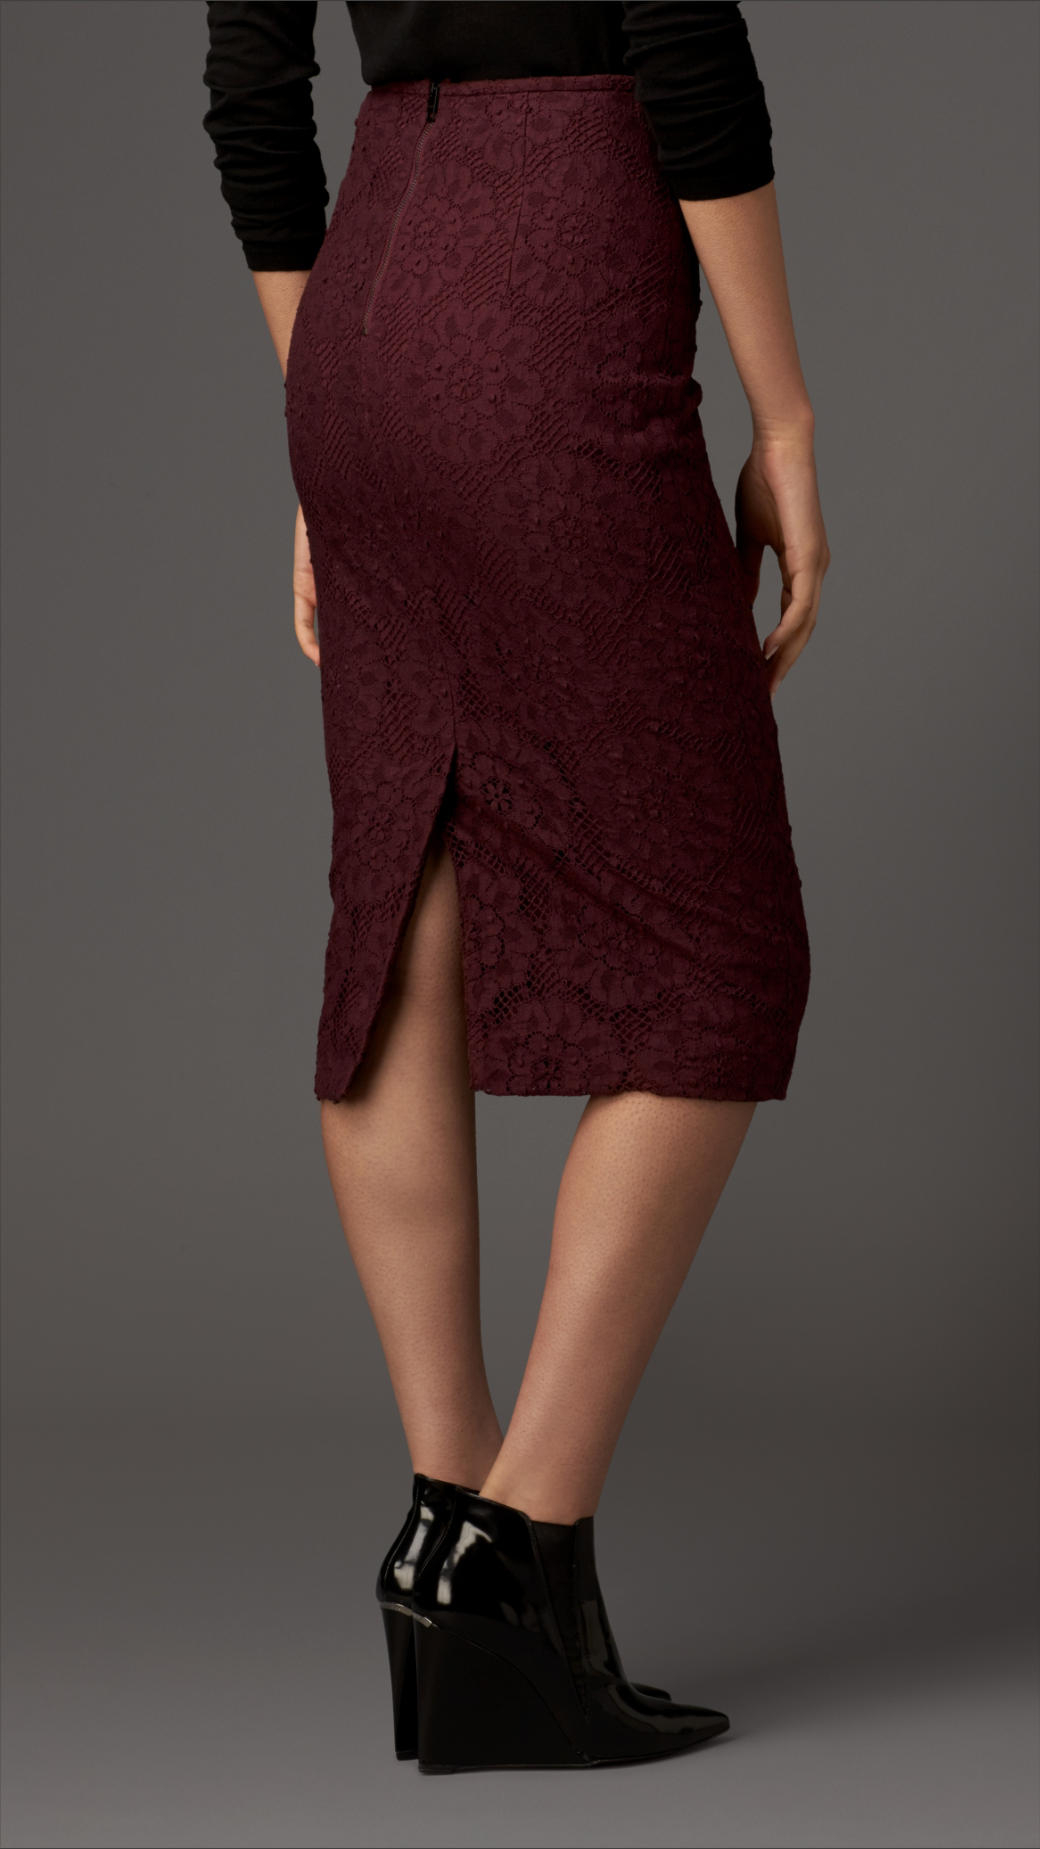 Burberry Woven Lace Cotton Pencil Skirt in Red | Lyst